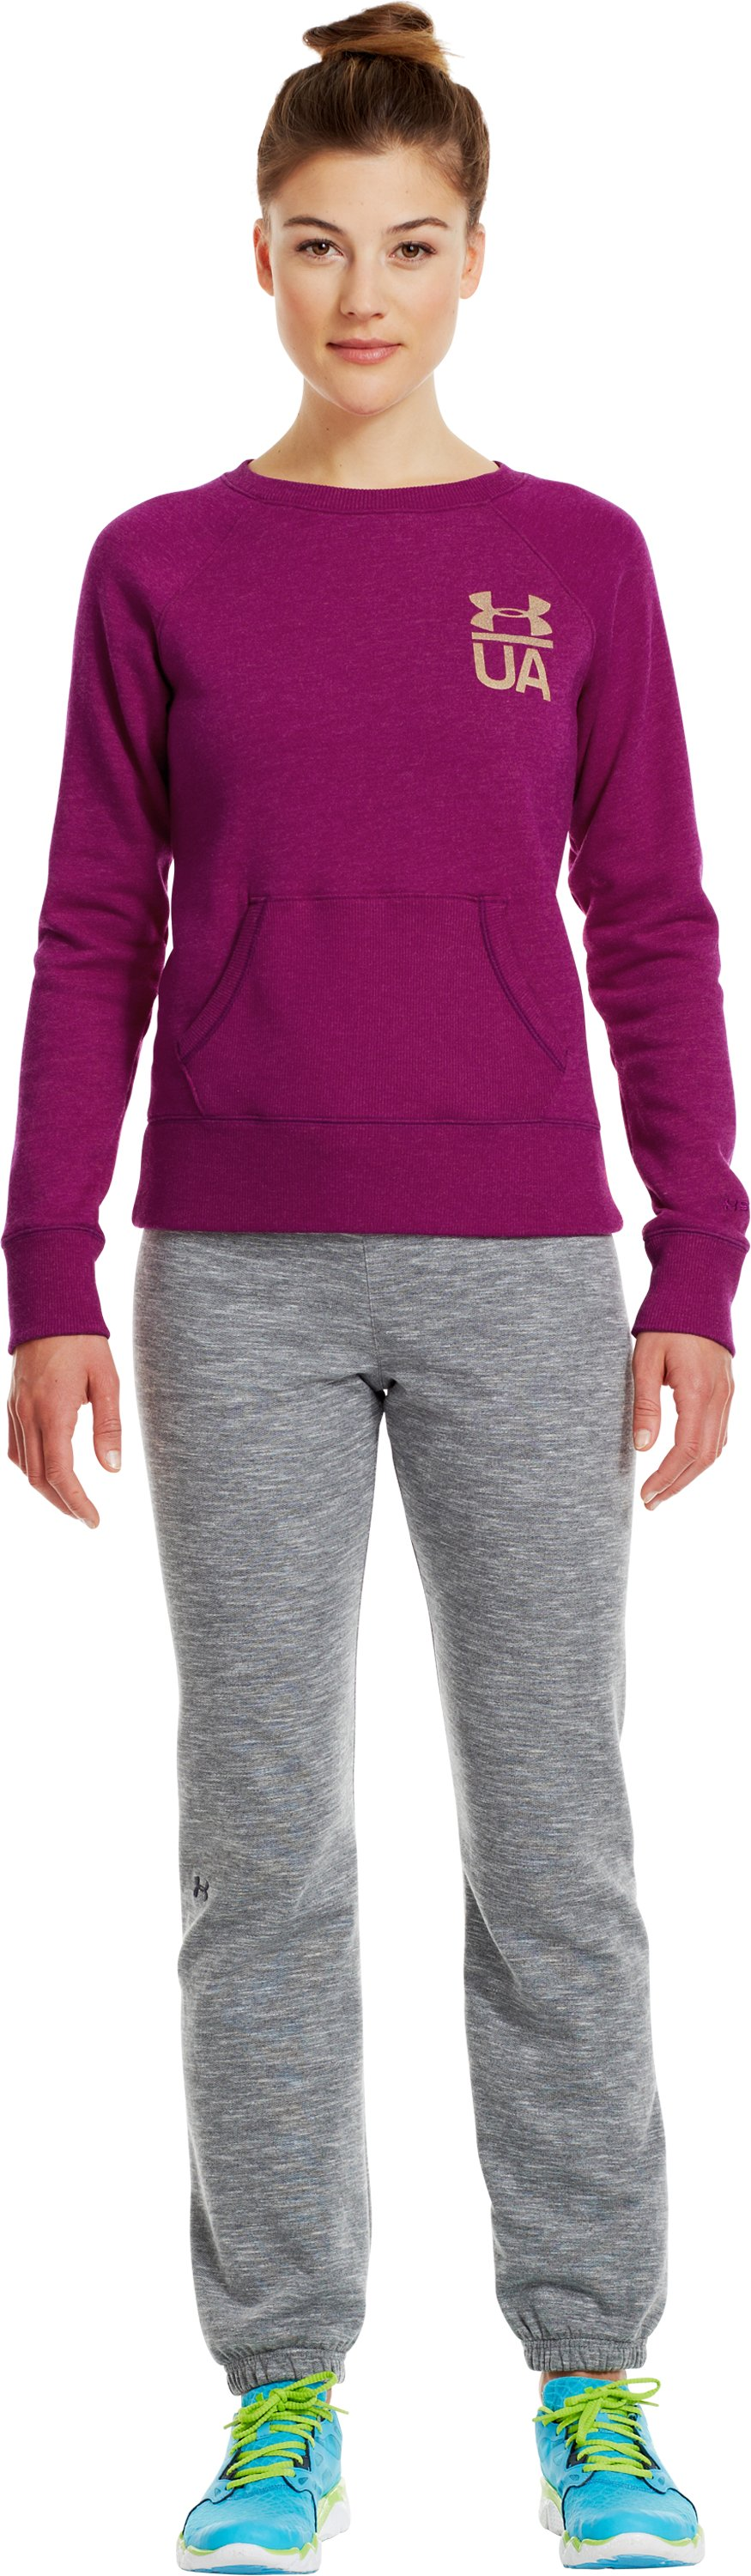 Women's Charged Cotton® Legacy Crew, Aubergine, Front